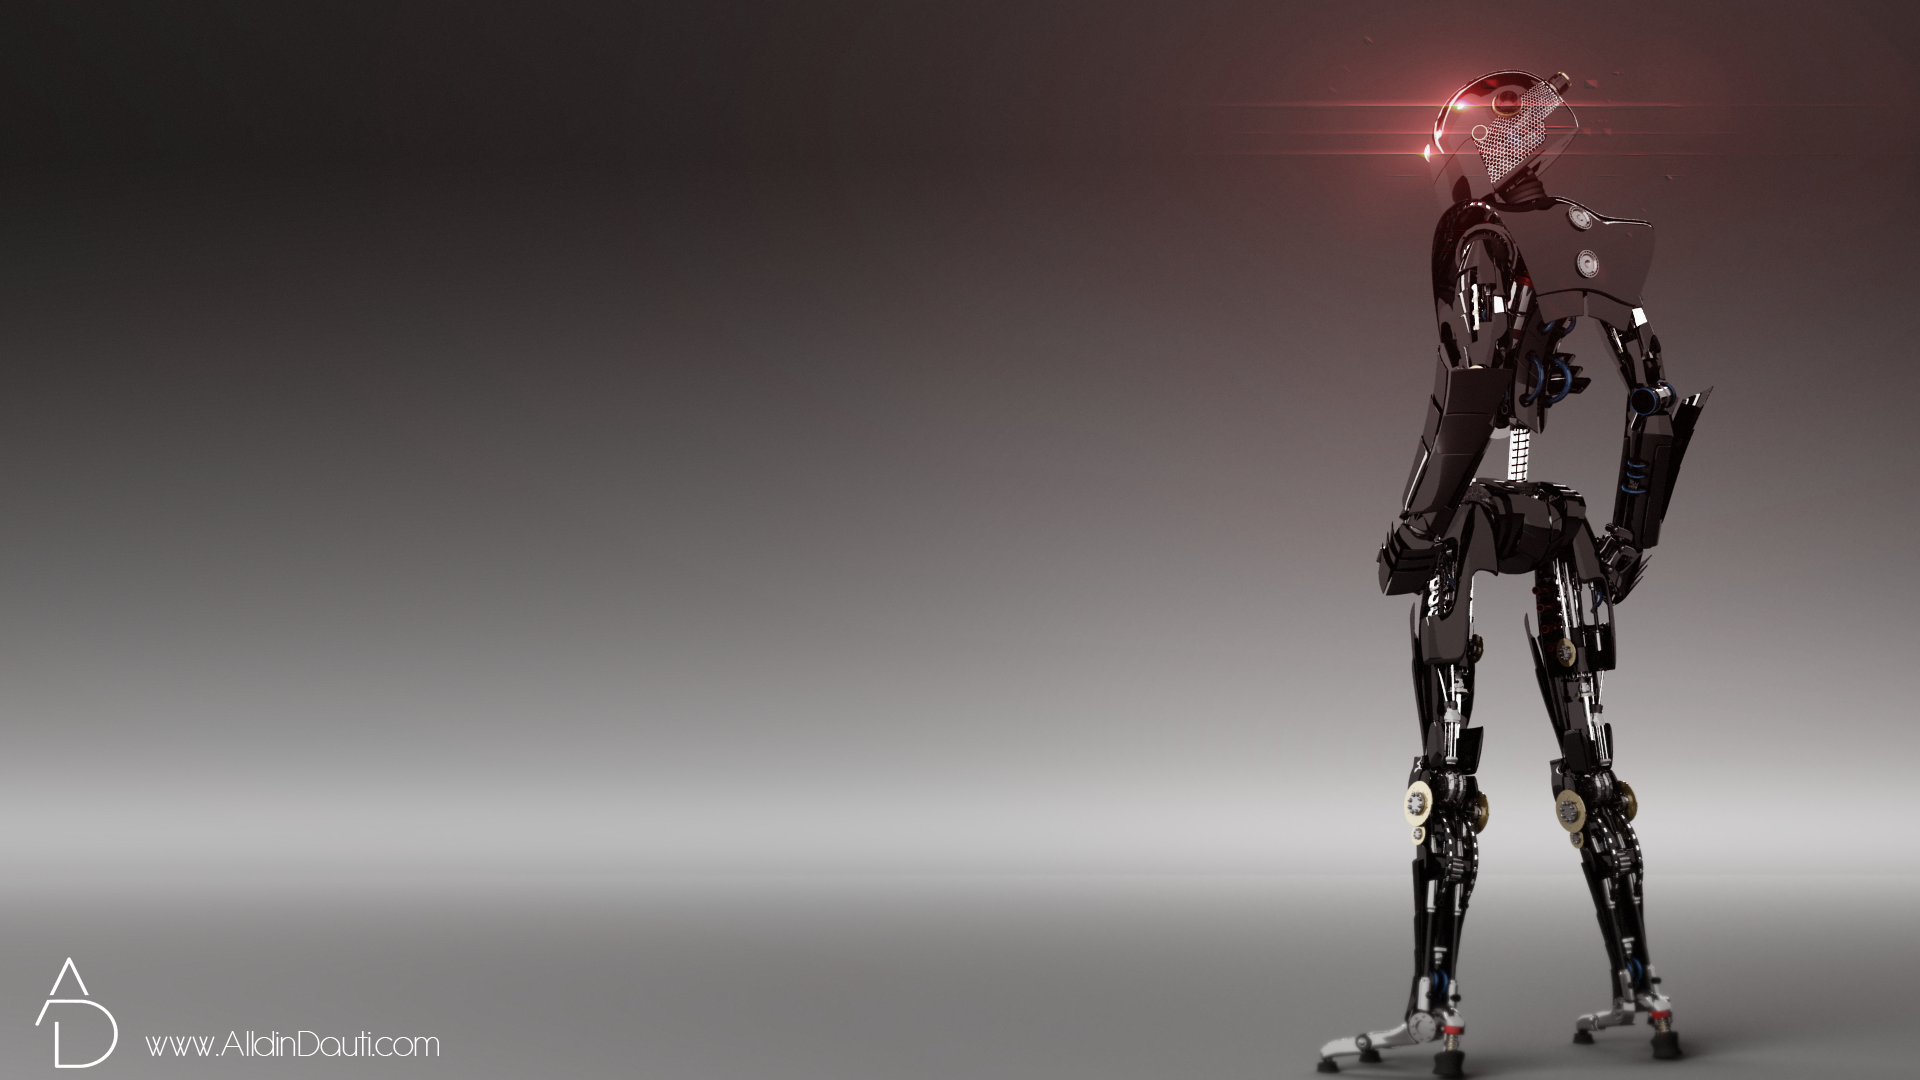 Project Exobot